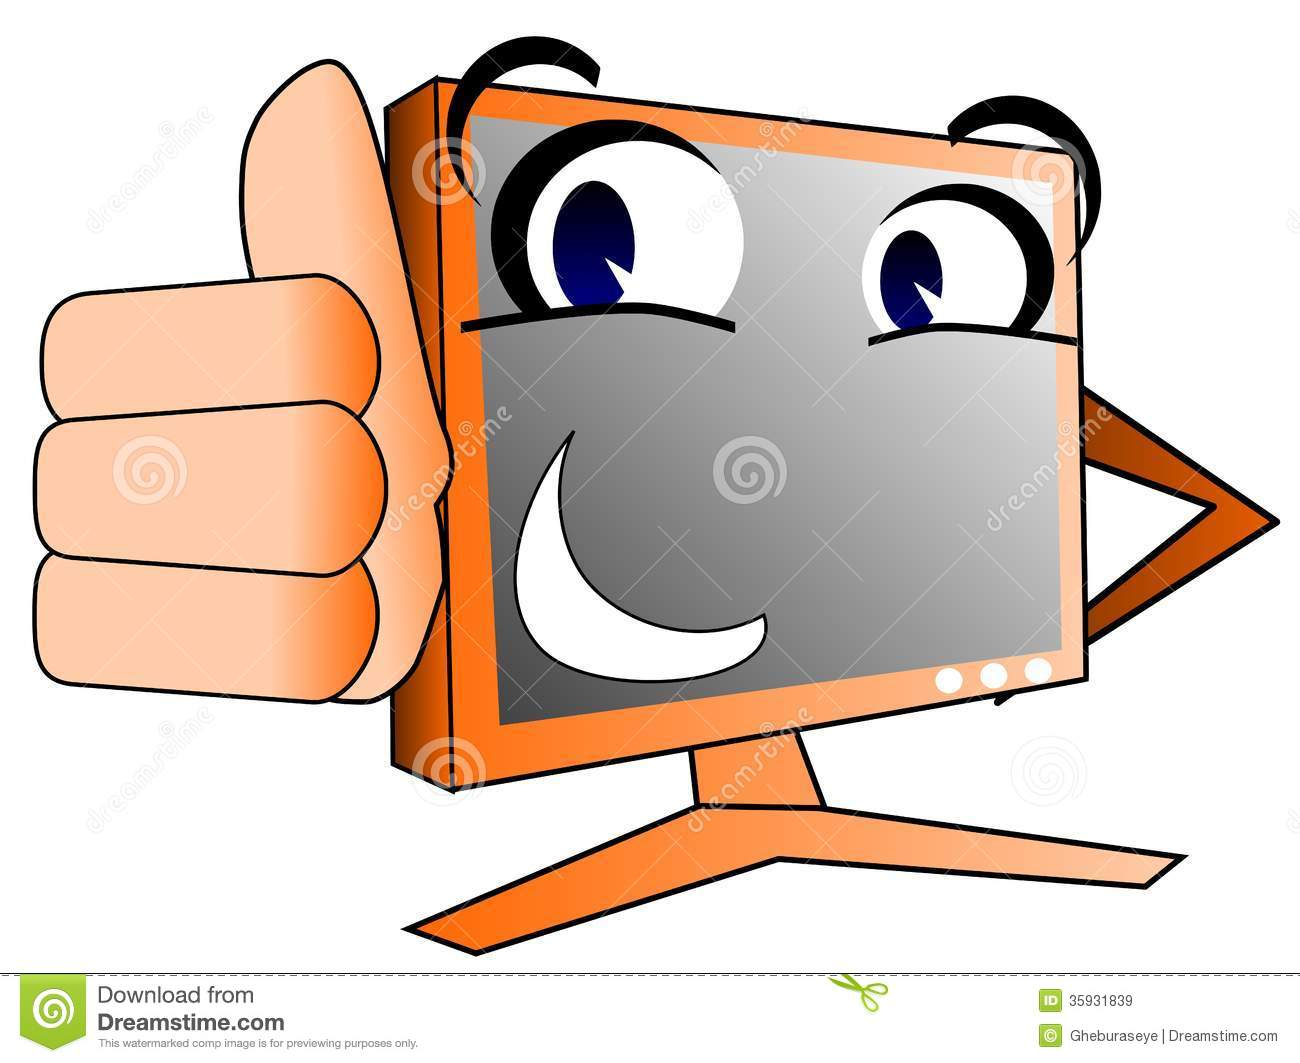 Happy computer user clipart picture freeuse download Happy Computer User | Clipart Panda - Free Clipart Images picture freeuse download